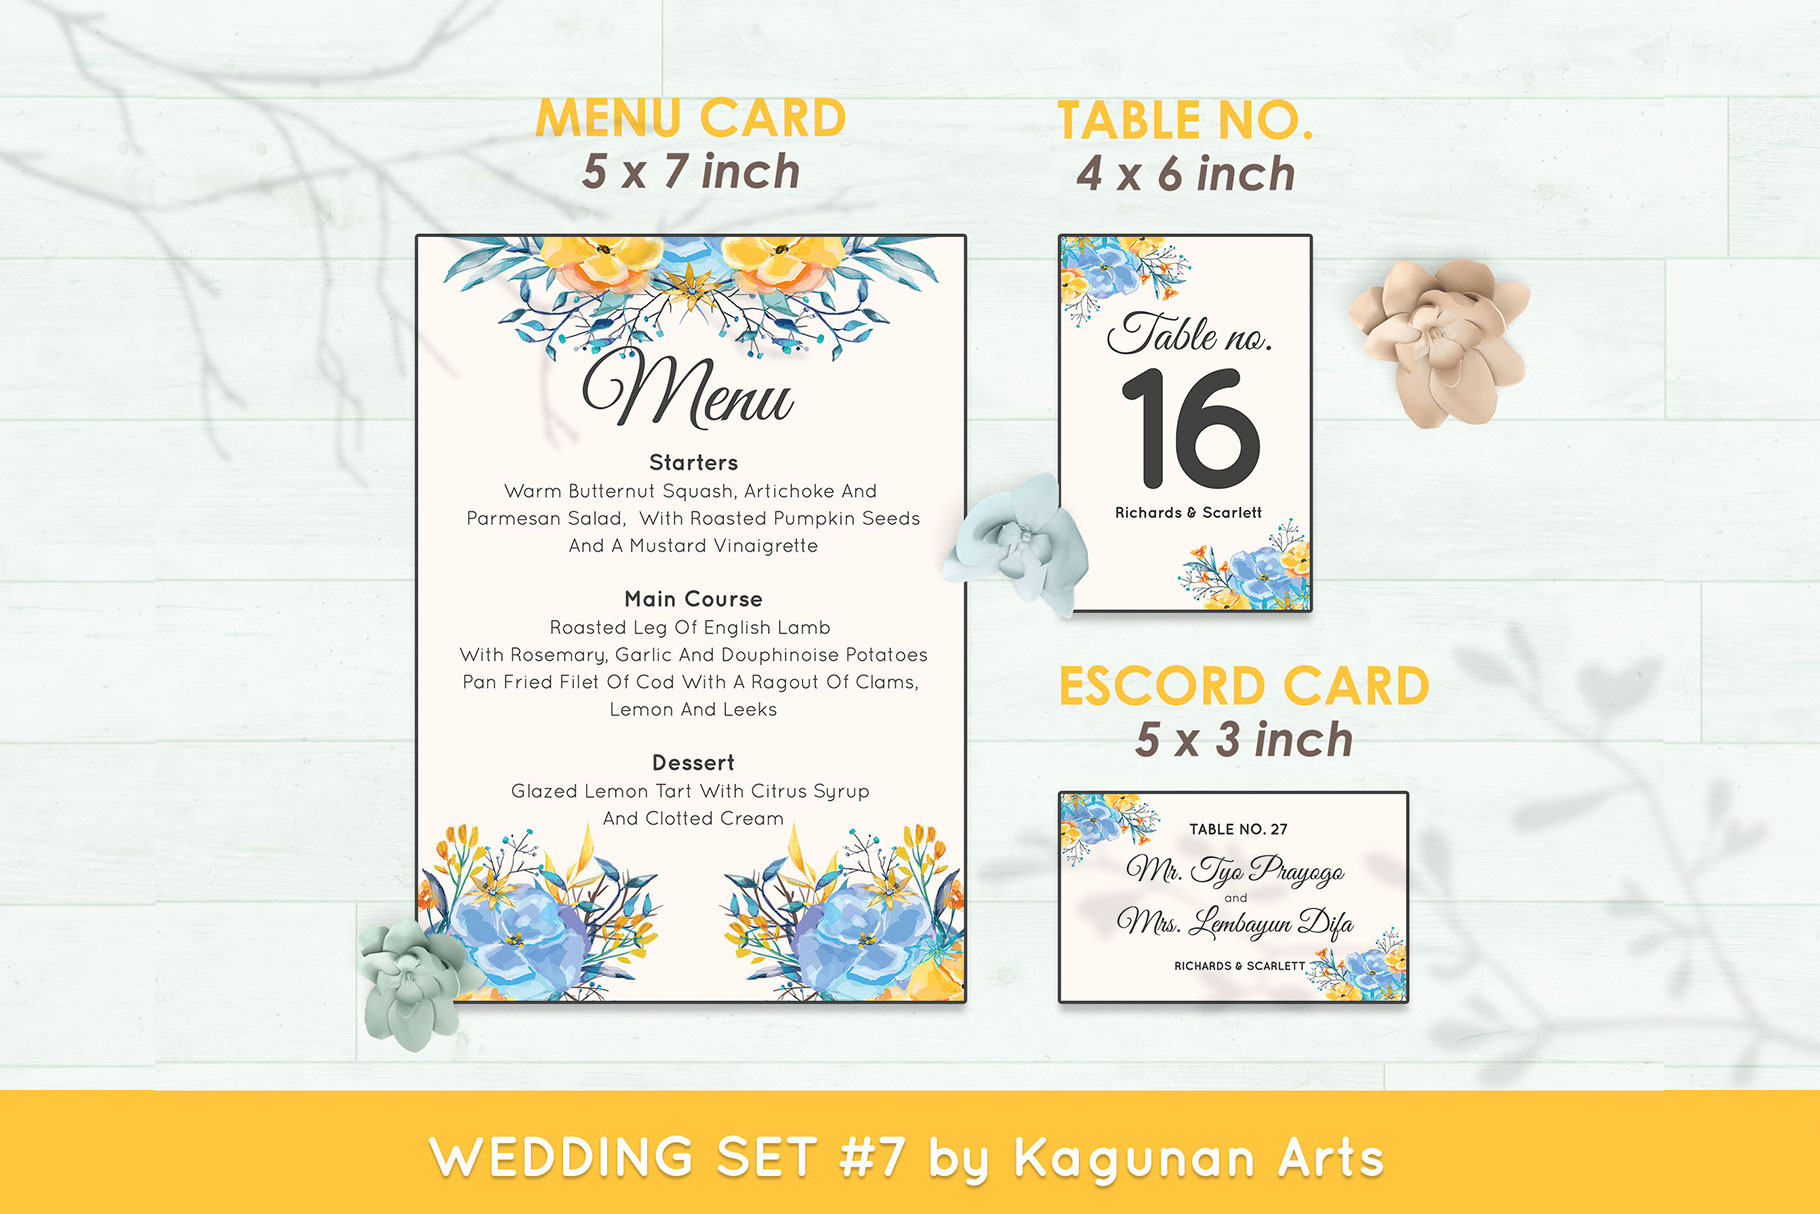 Wedding Invitation Set #7 Watercolor Floral Flower Style example image 6